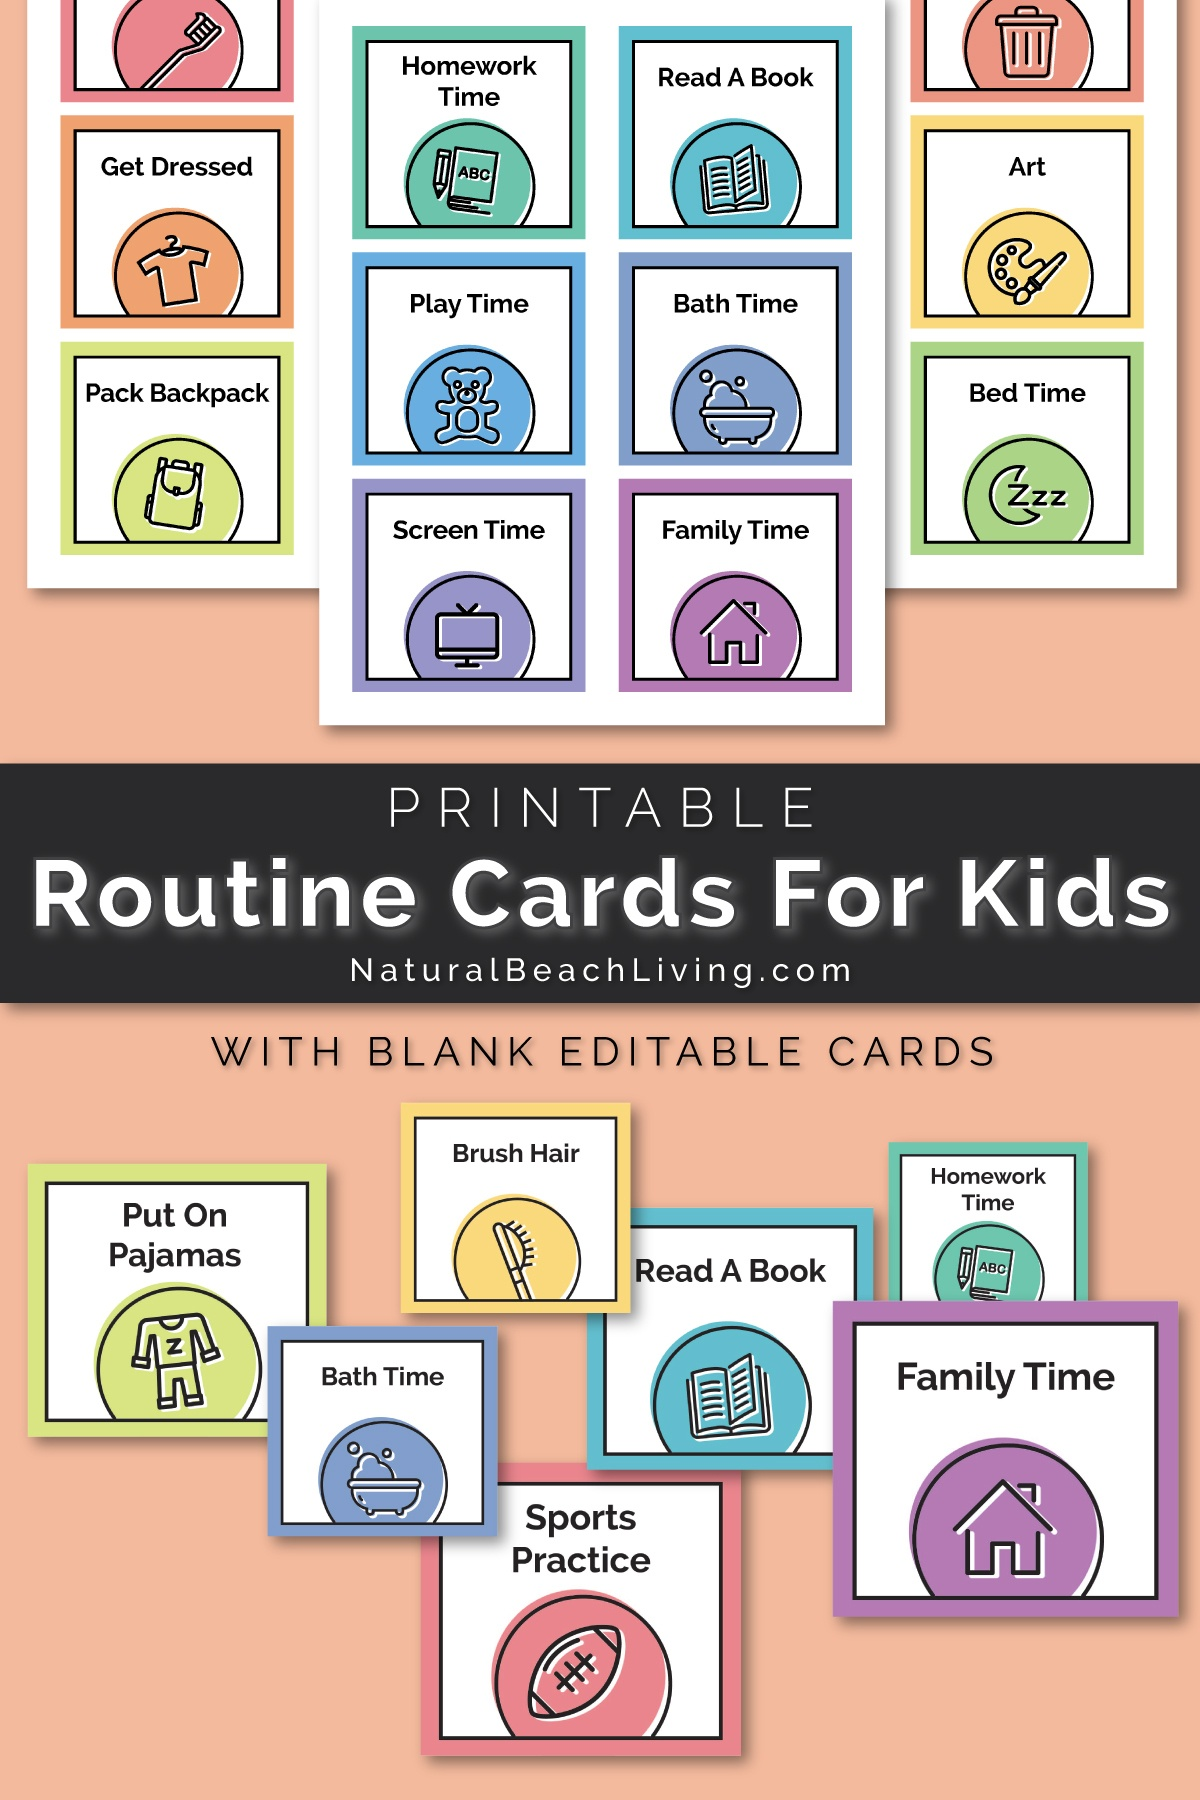 Visual Schedule - Free Printable Routine Cards - Natural Beach Living - Free Printable Routine Cards